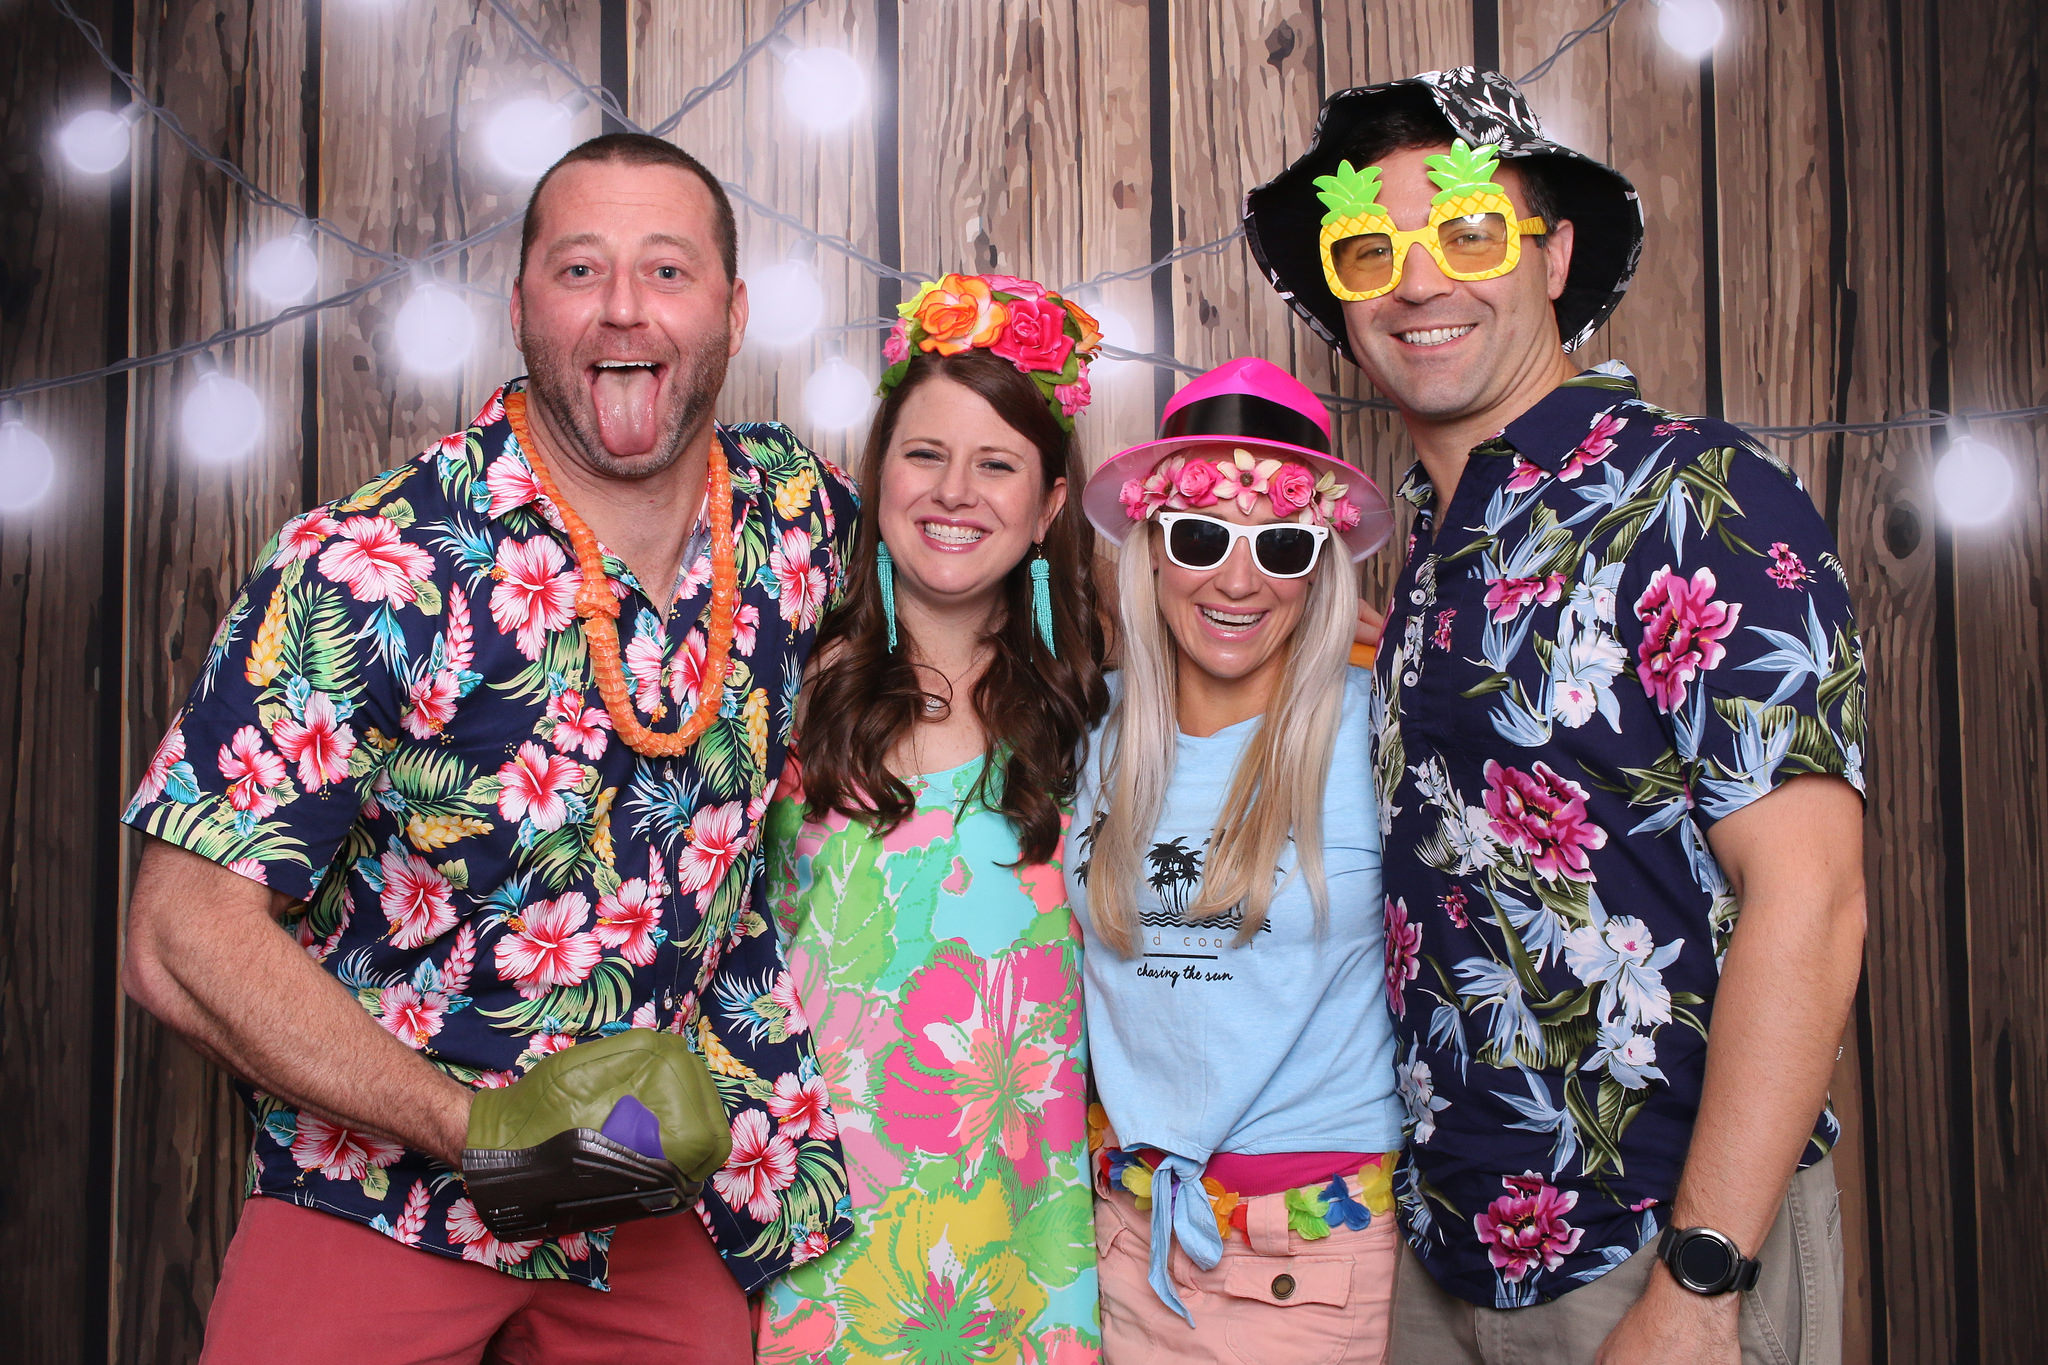 Photo Booth Rental Woodridge Illinois.jpg